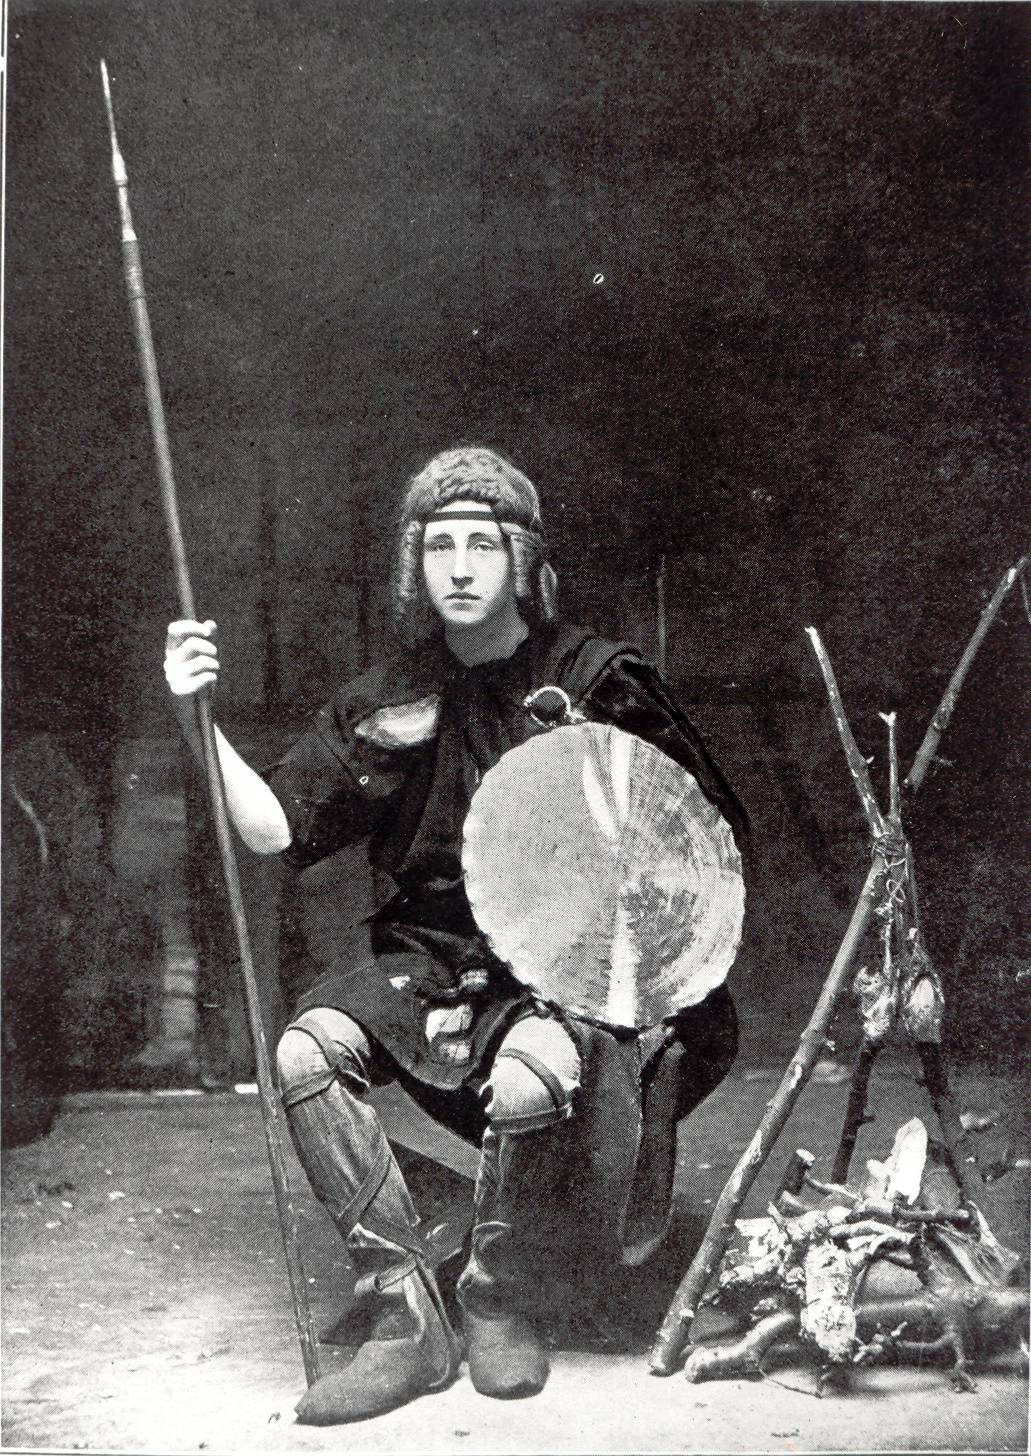 Eamon Bulfin as Cairbre in The Coming of Fionn by Standish O'Grady. Bulfin went on to fight in the 1916 Rising. OPW.